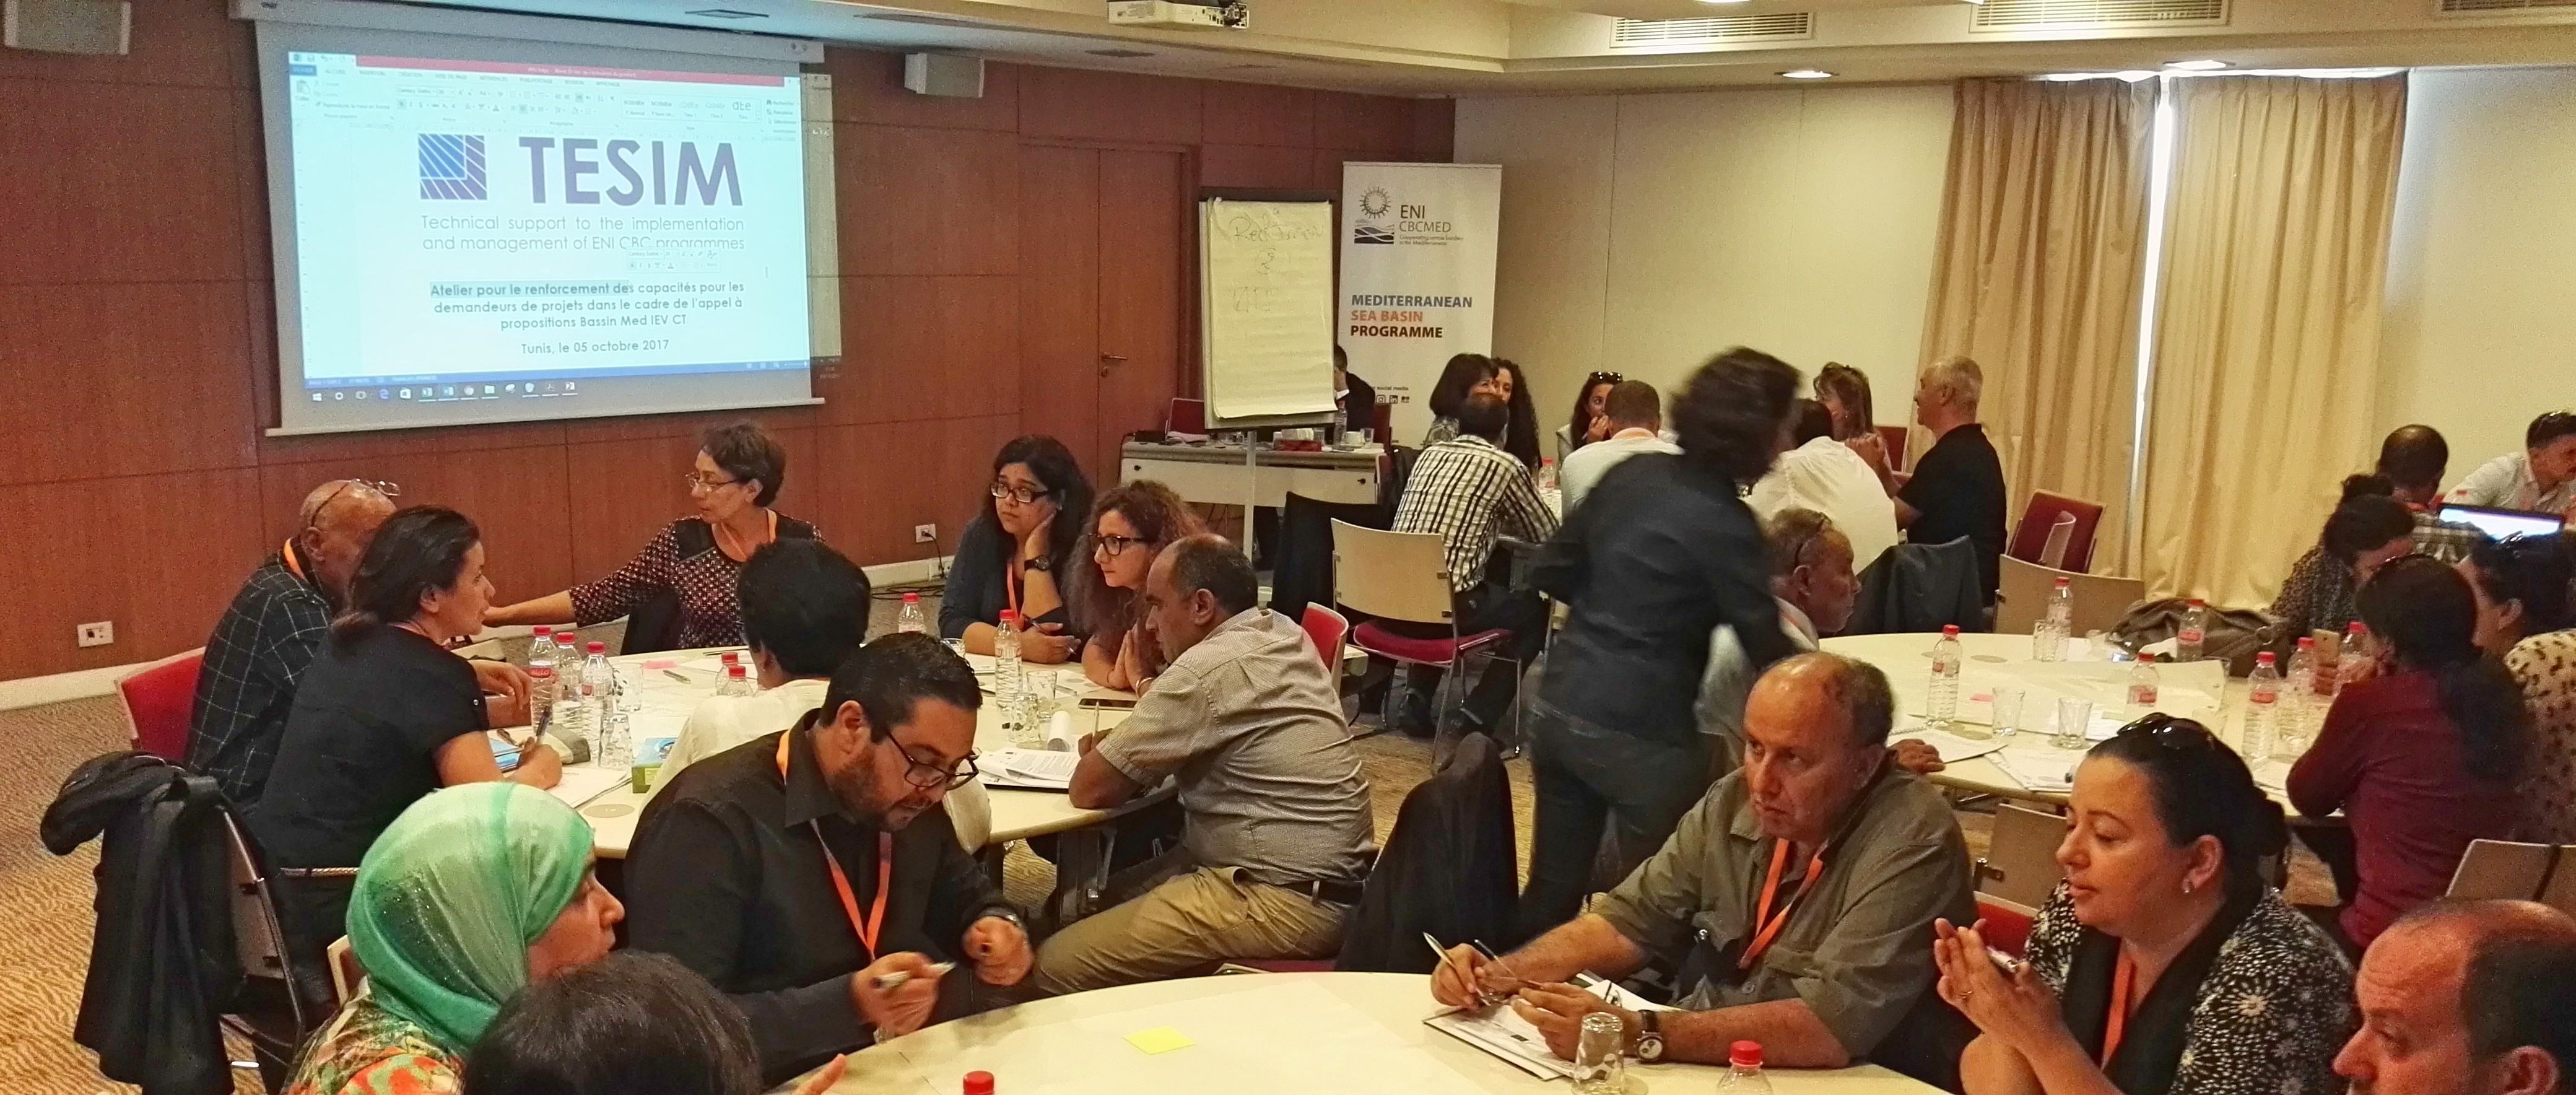 Capacity Building Workshop for ENI CBC Med Programme in Lebanon